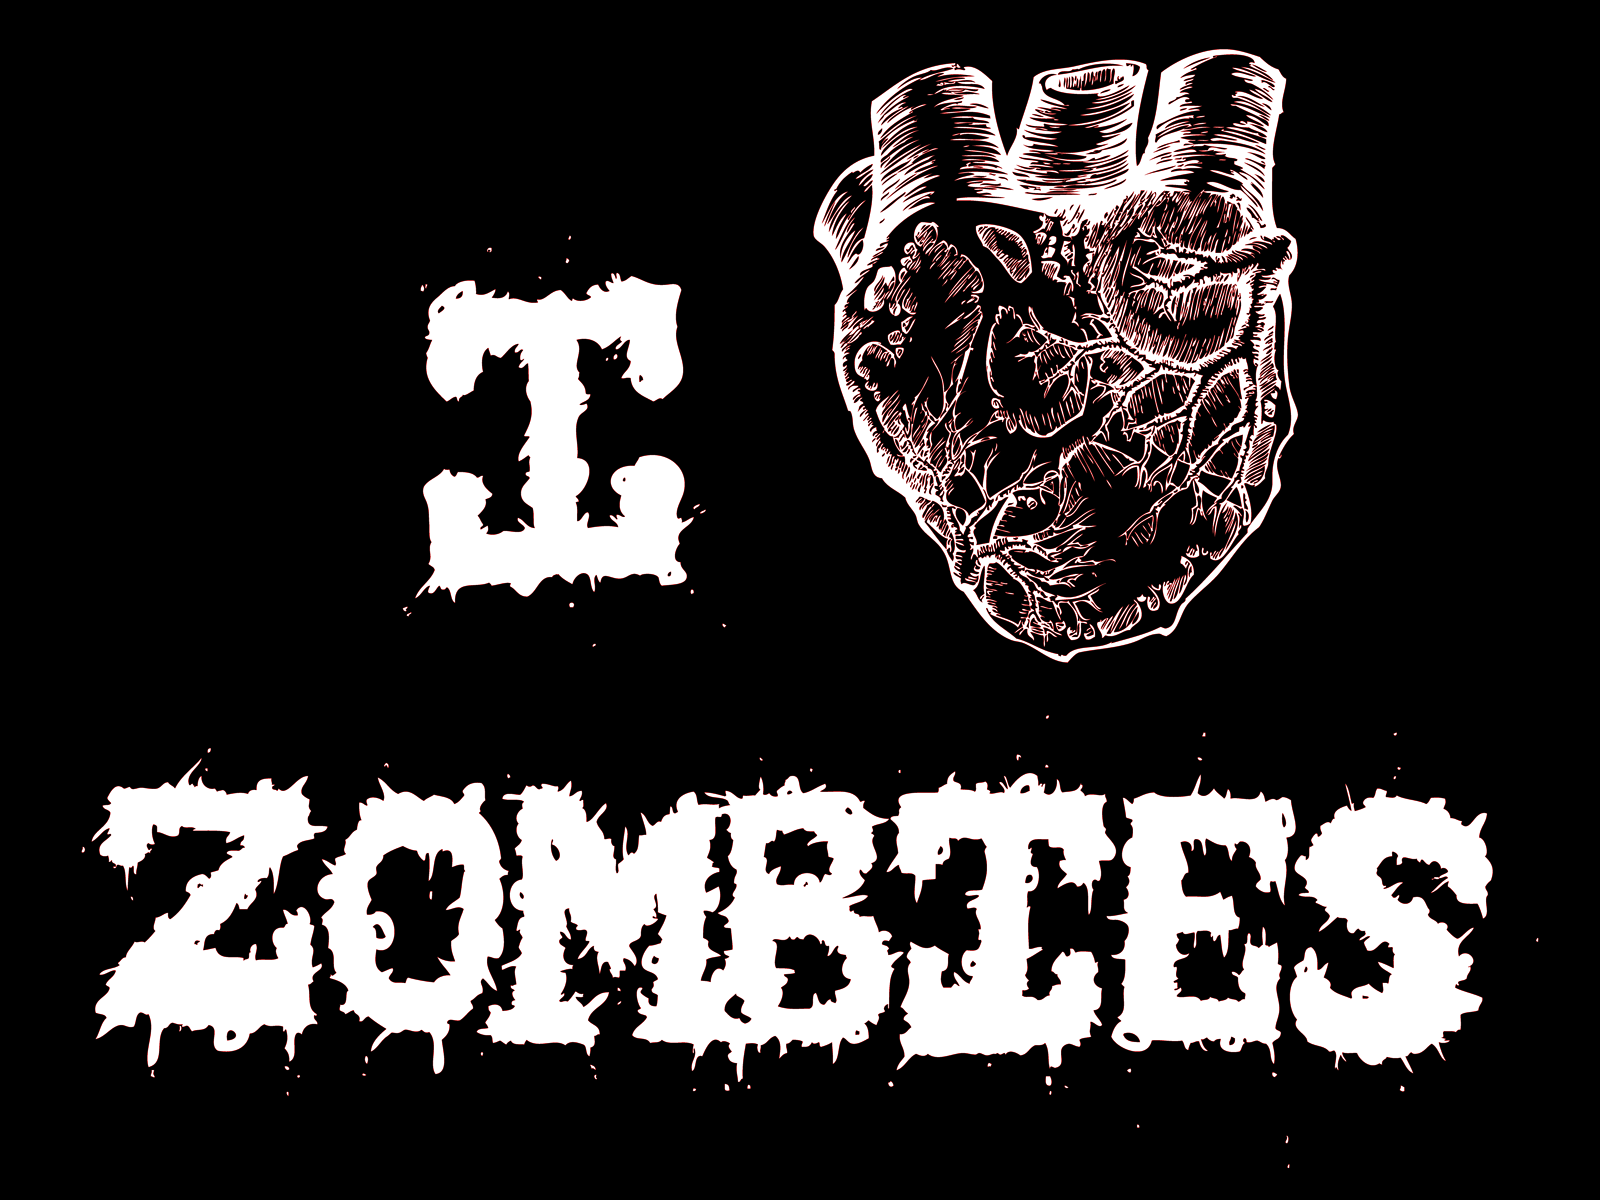 free hd wallpapers zombie - photo #25